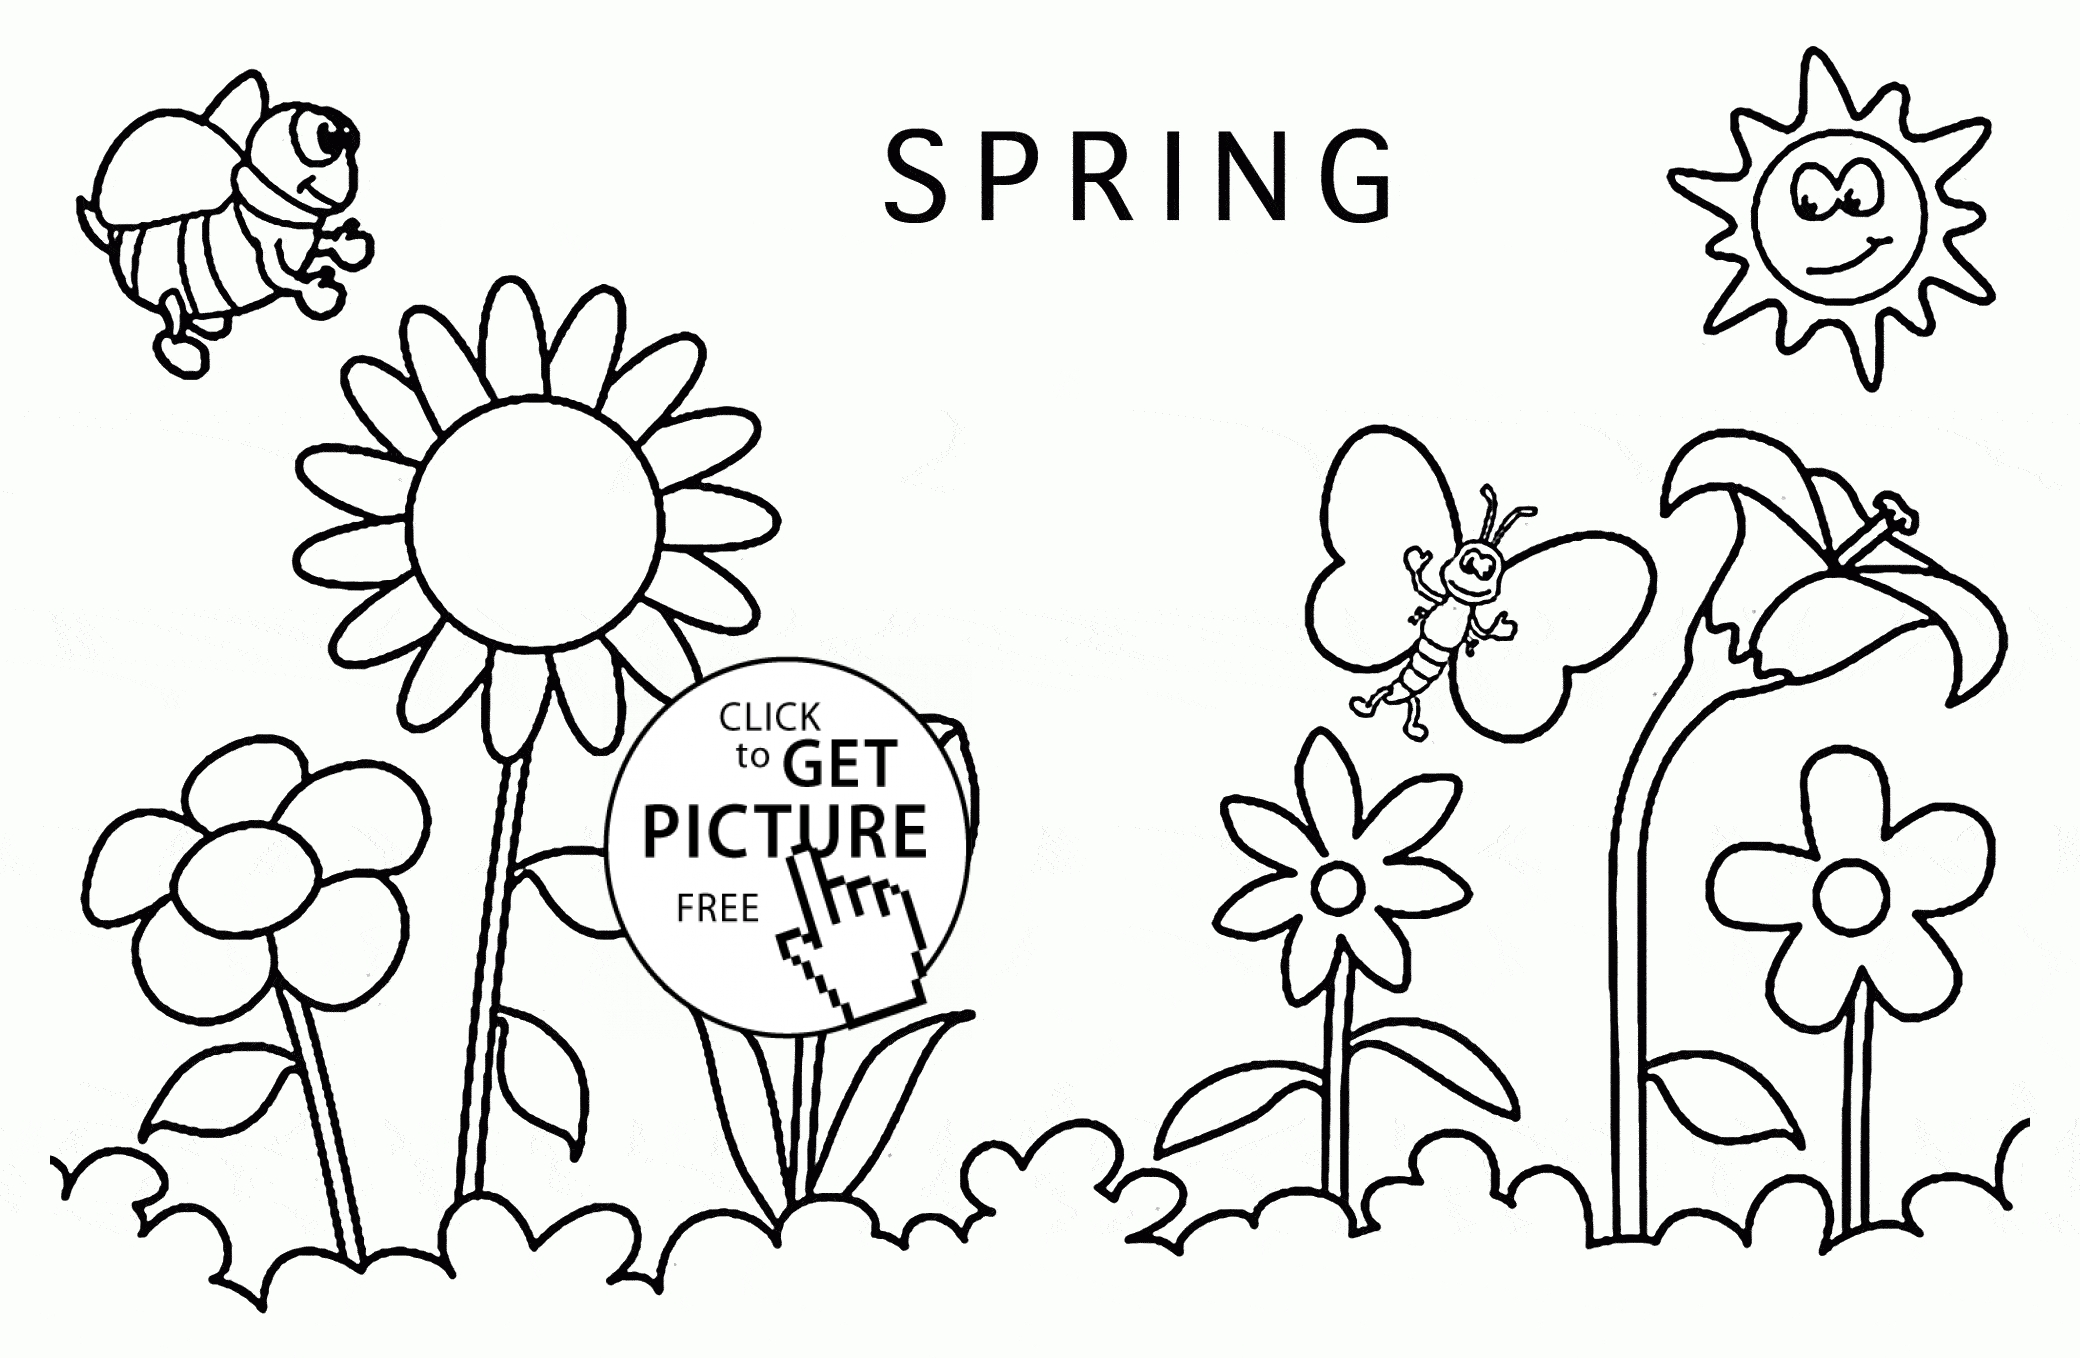 coloring pages for kid - spring around coloring page for kids seasons coloring pages printables free